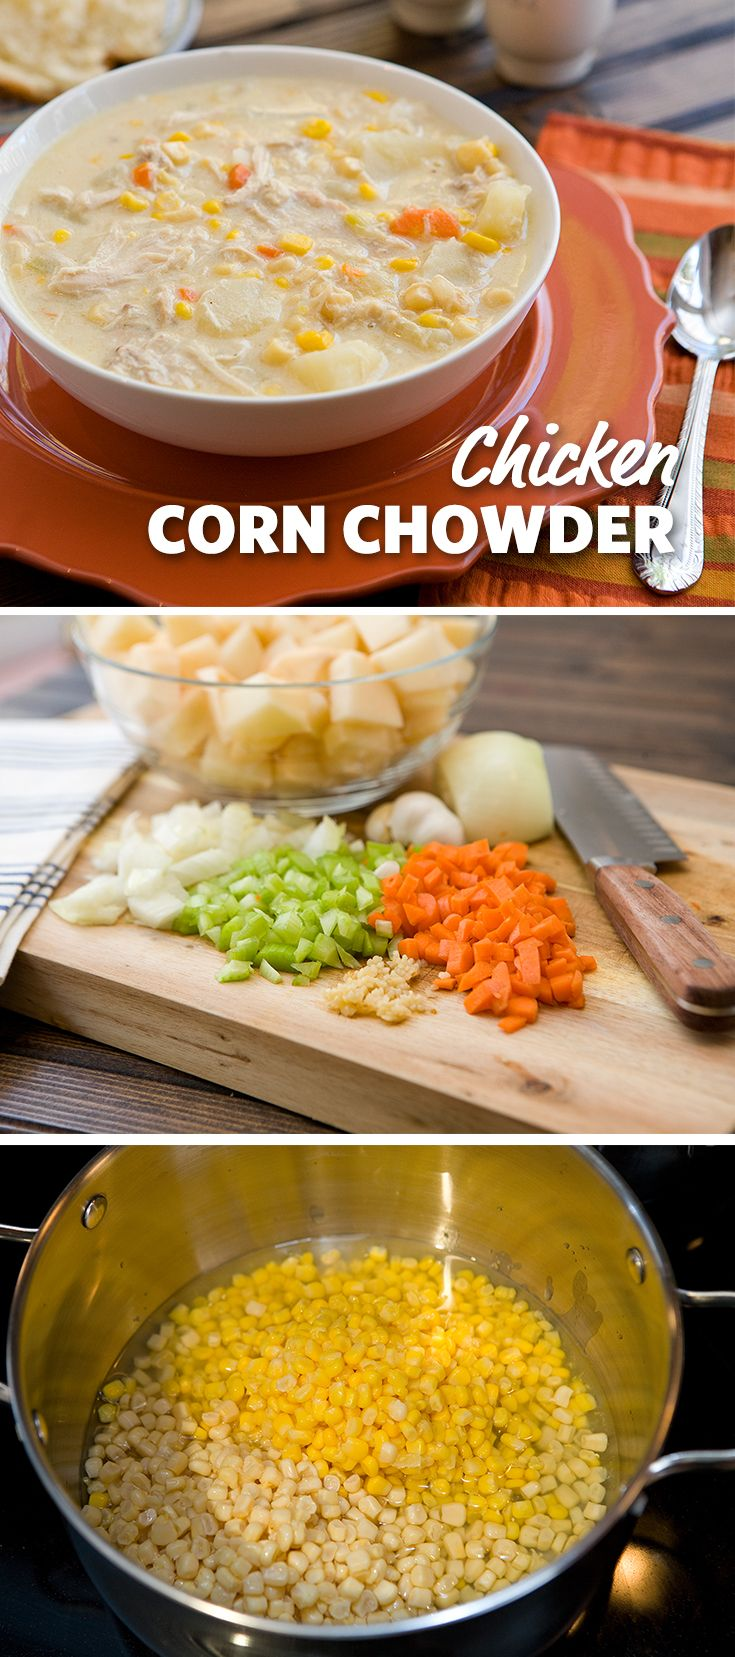 The addition of chicken to this corn chowder is a pleasant addition. It's satisfying, warming and filling! #FoodLion